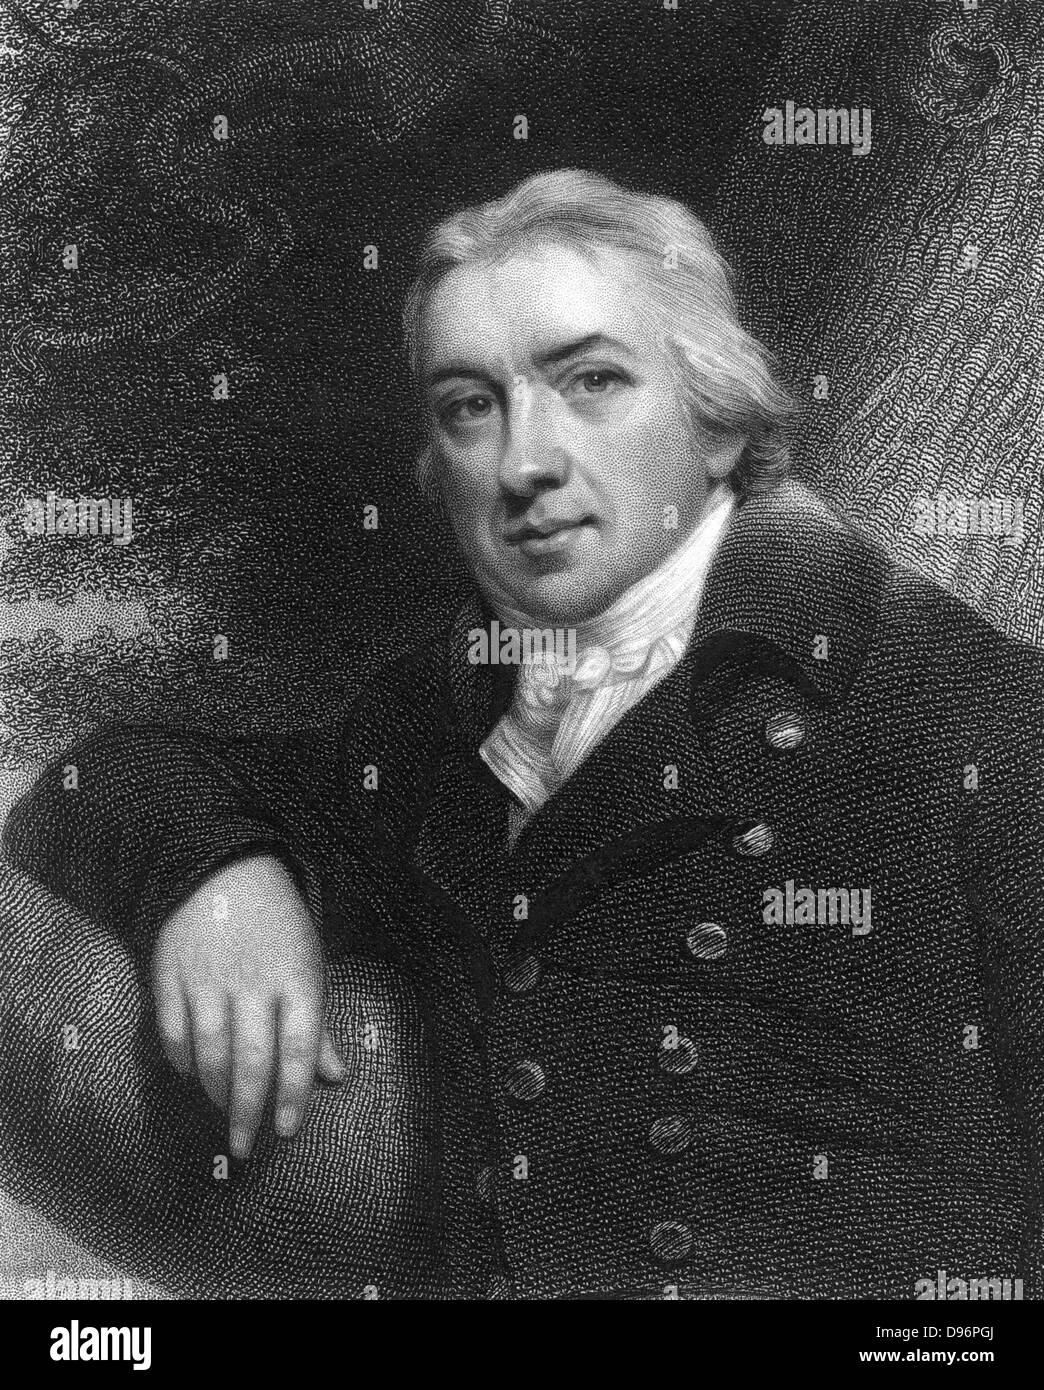 Edward Jenner (1749-1823) English physician.  Jenner practiced as a country doctor in his native Gloucestershire. - Stock Image